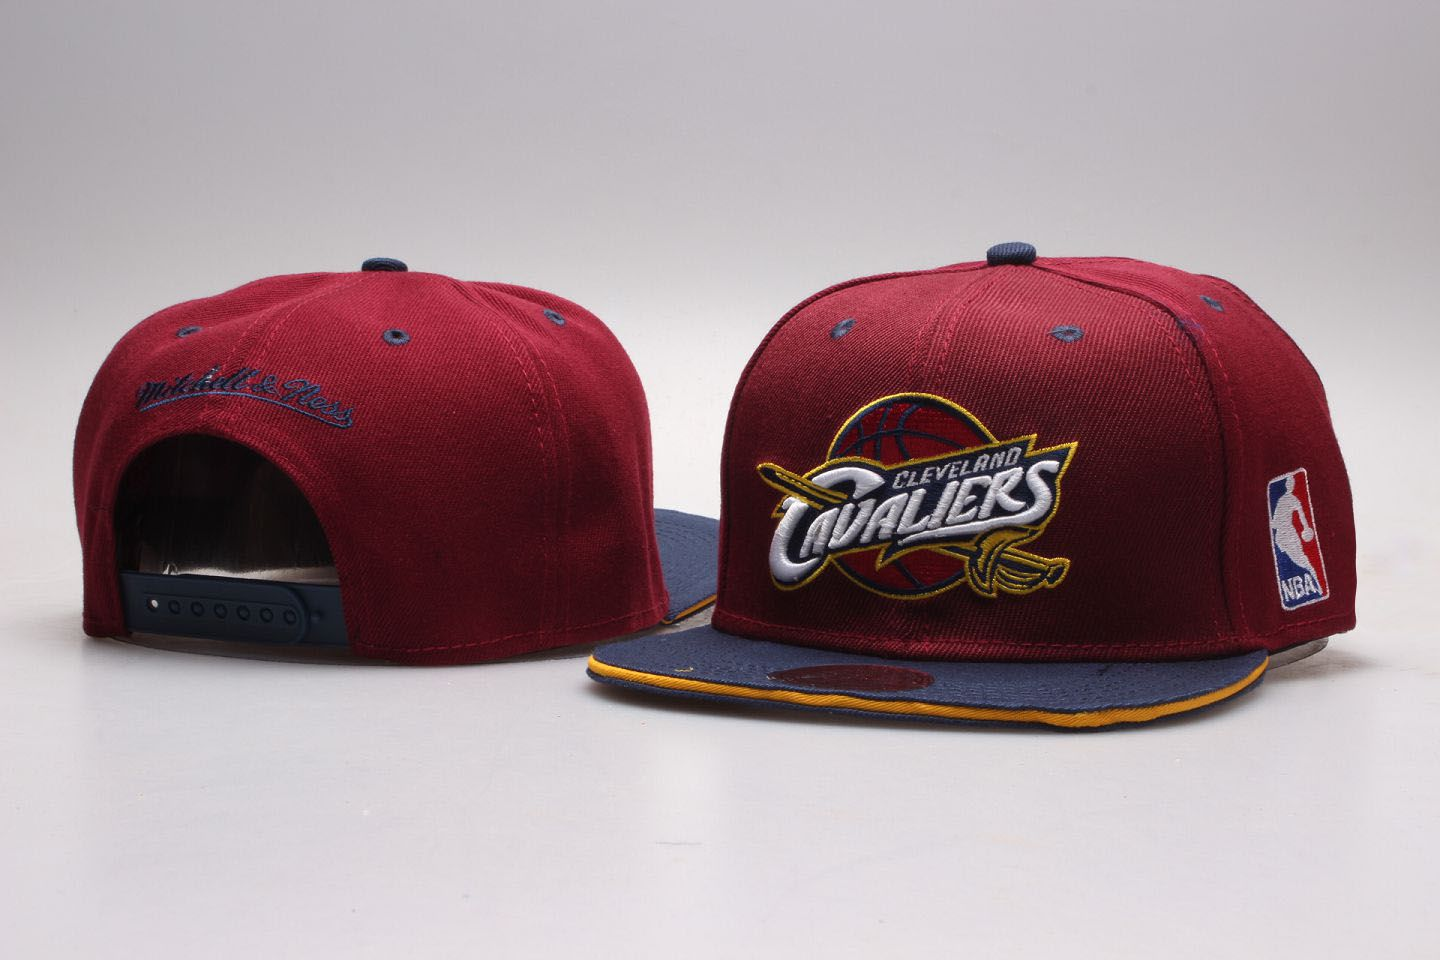 NBA Cleveland Cavaliers Snapback hat 201811251